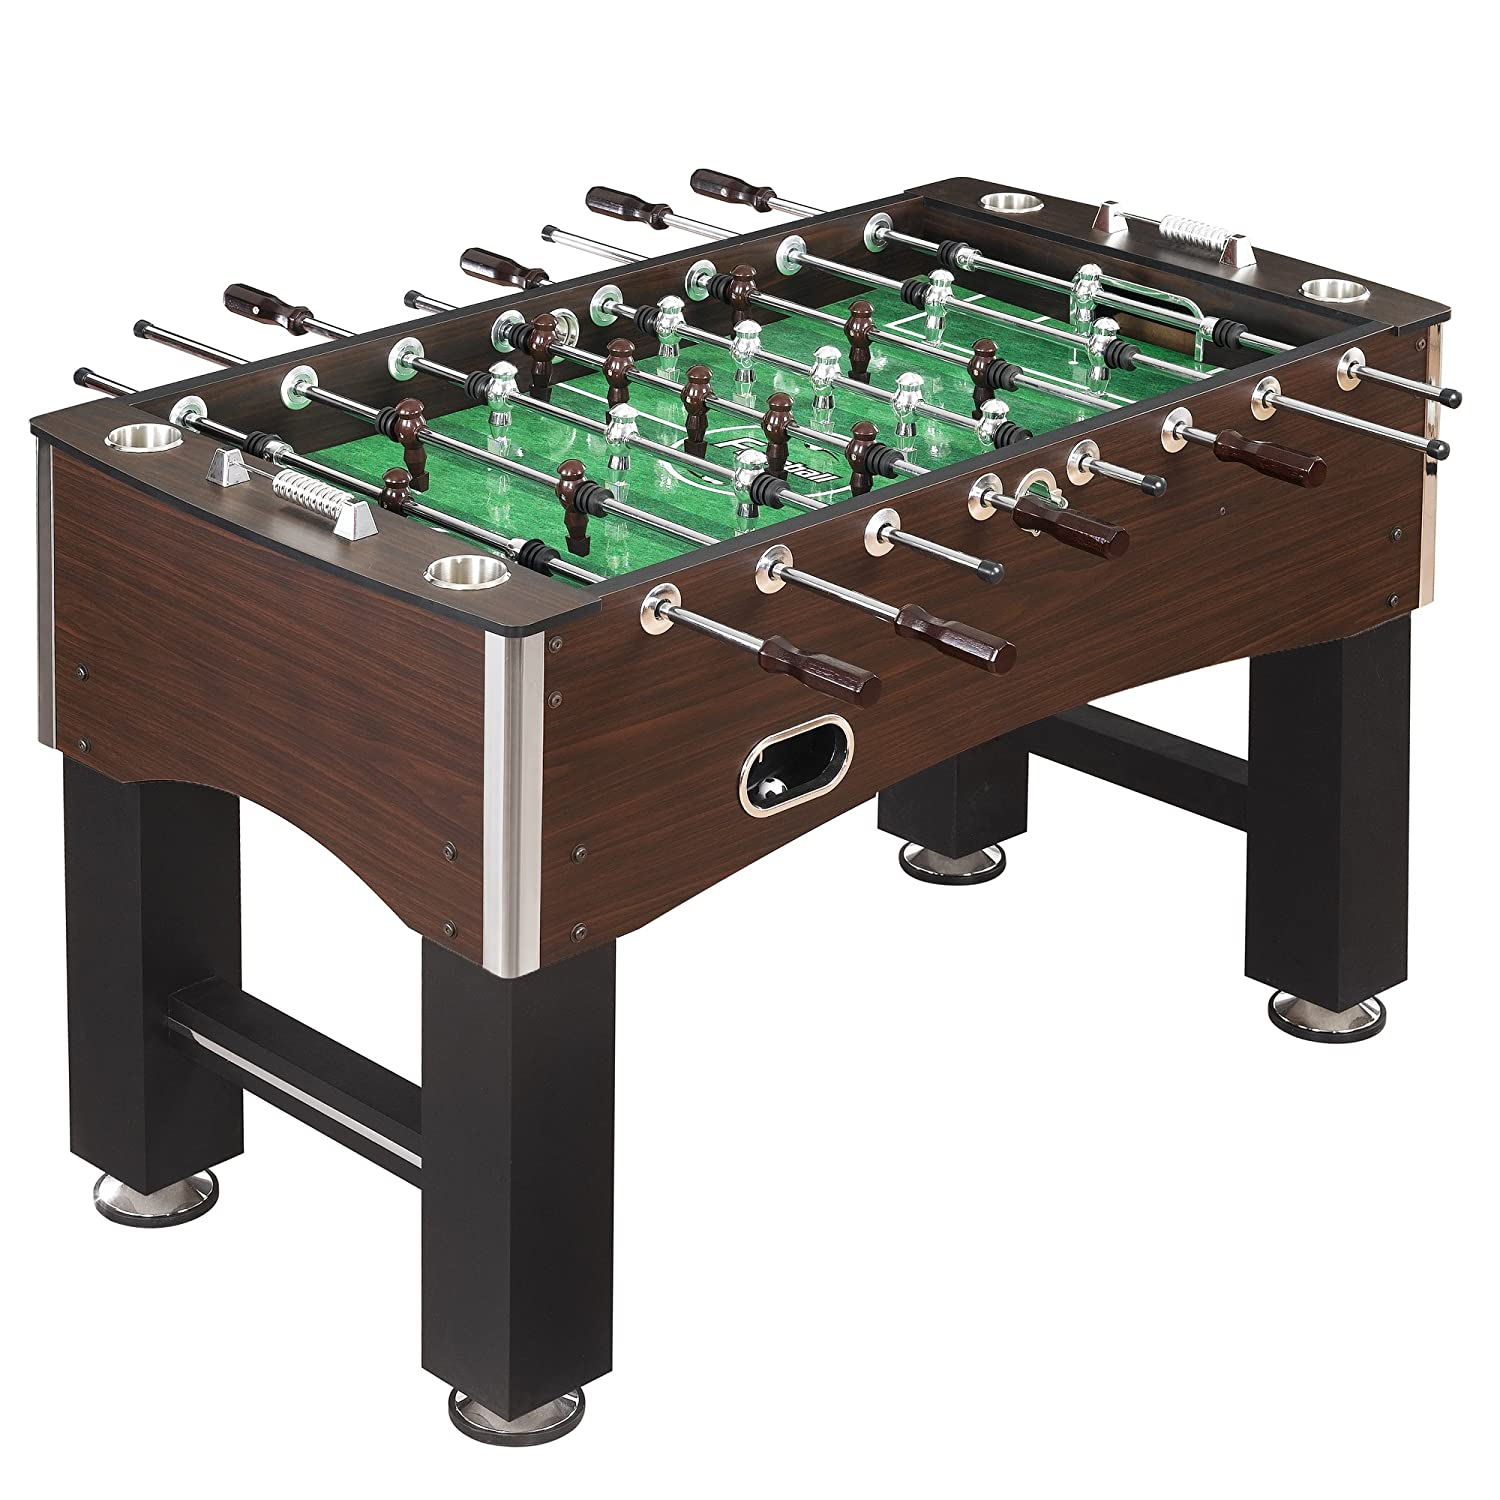 Hathaway 56-inch Primo Foosball Table、ファミリサッカーゲームwith木目仕上げ、アナログスコアリングand Free Accessories B009L2LNQ8